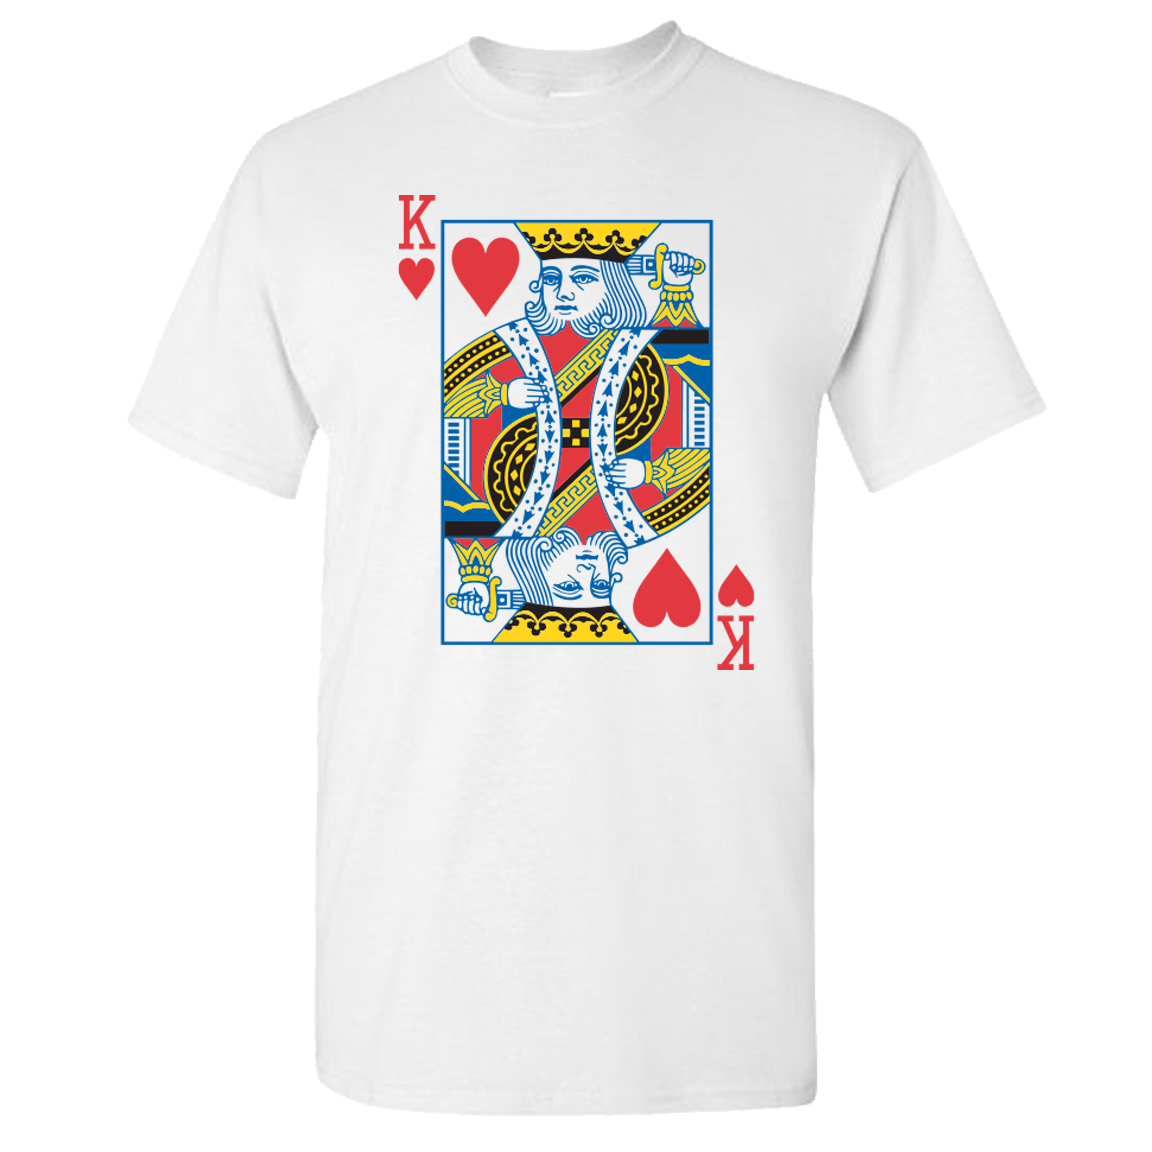 King of Hearts - Cincy Shirts